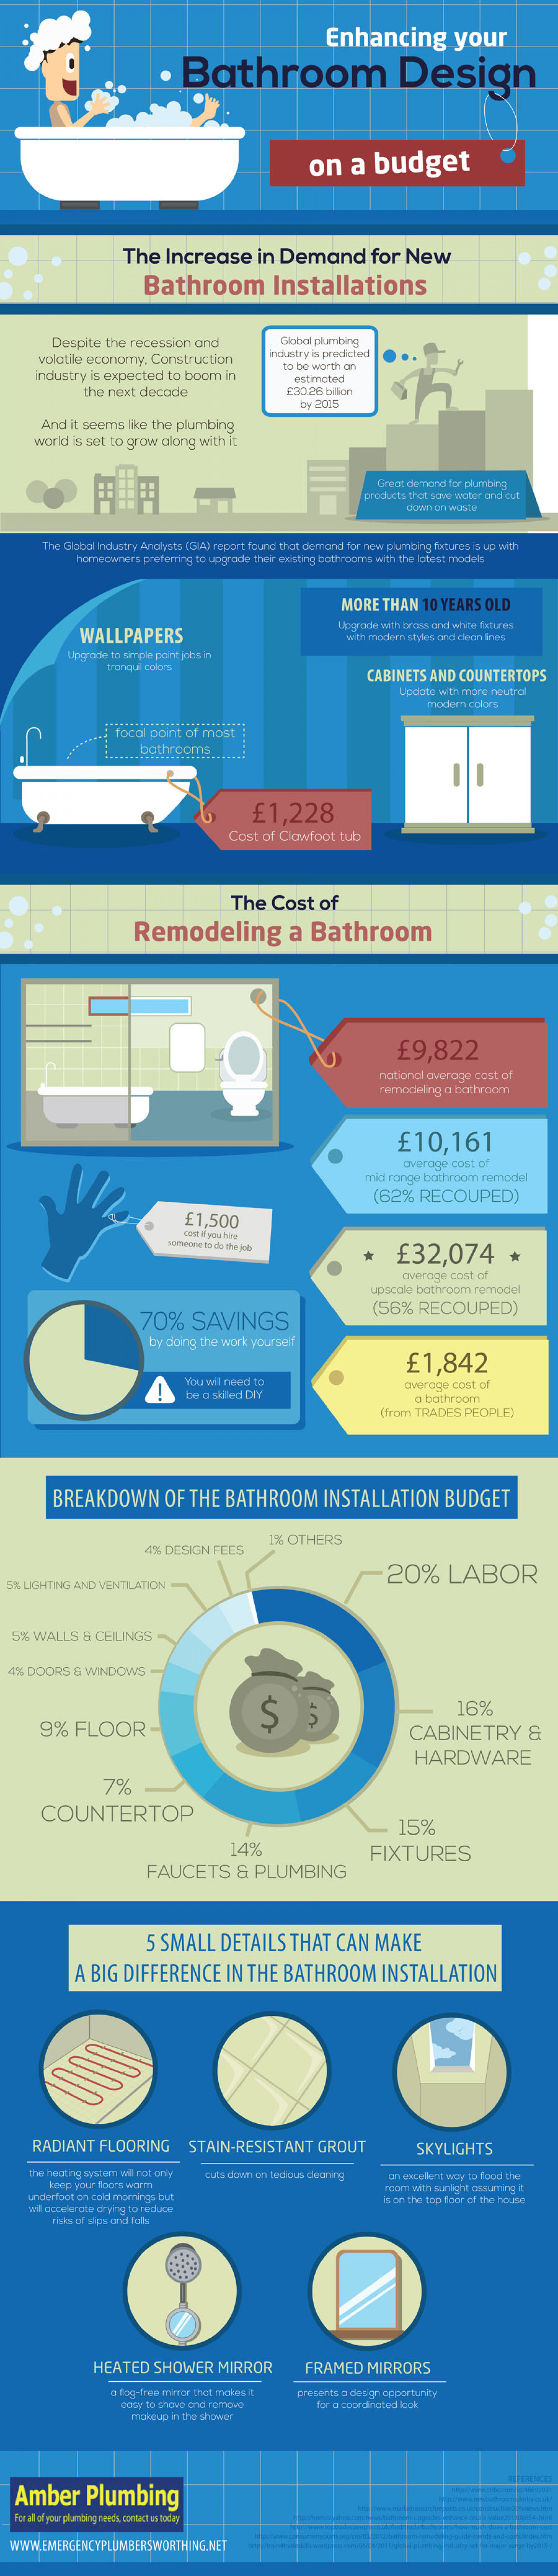 Enhancing your Bathroom Design on a Budget Infographic